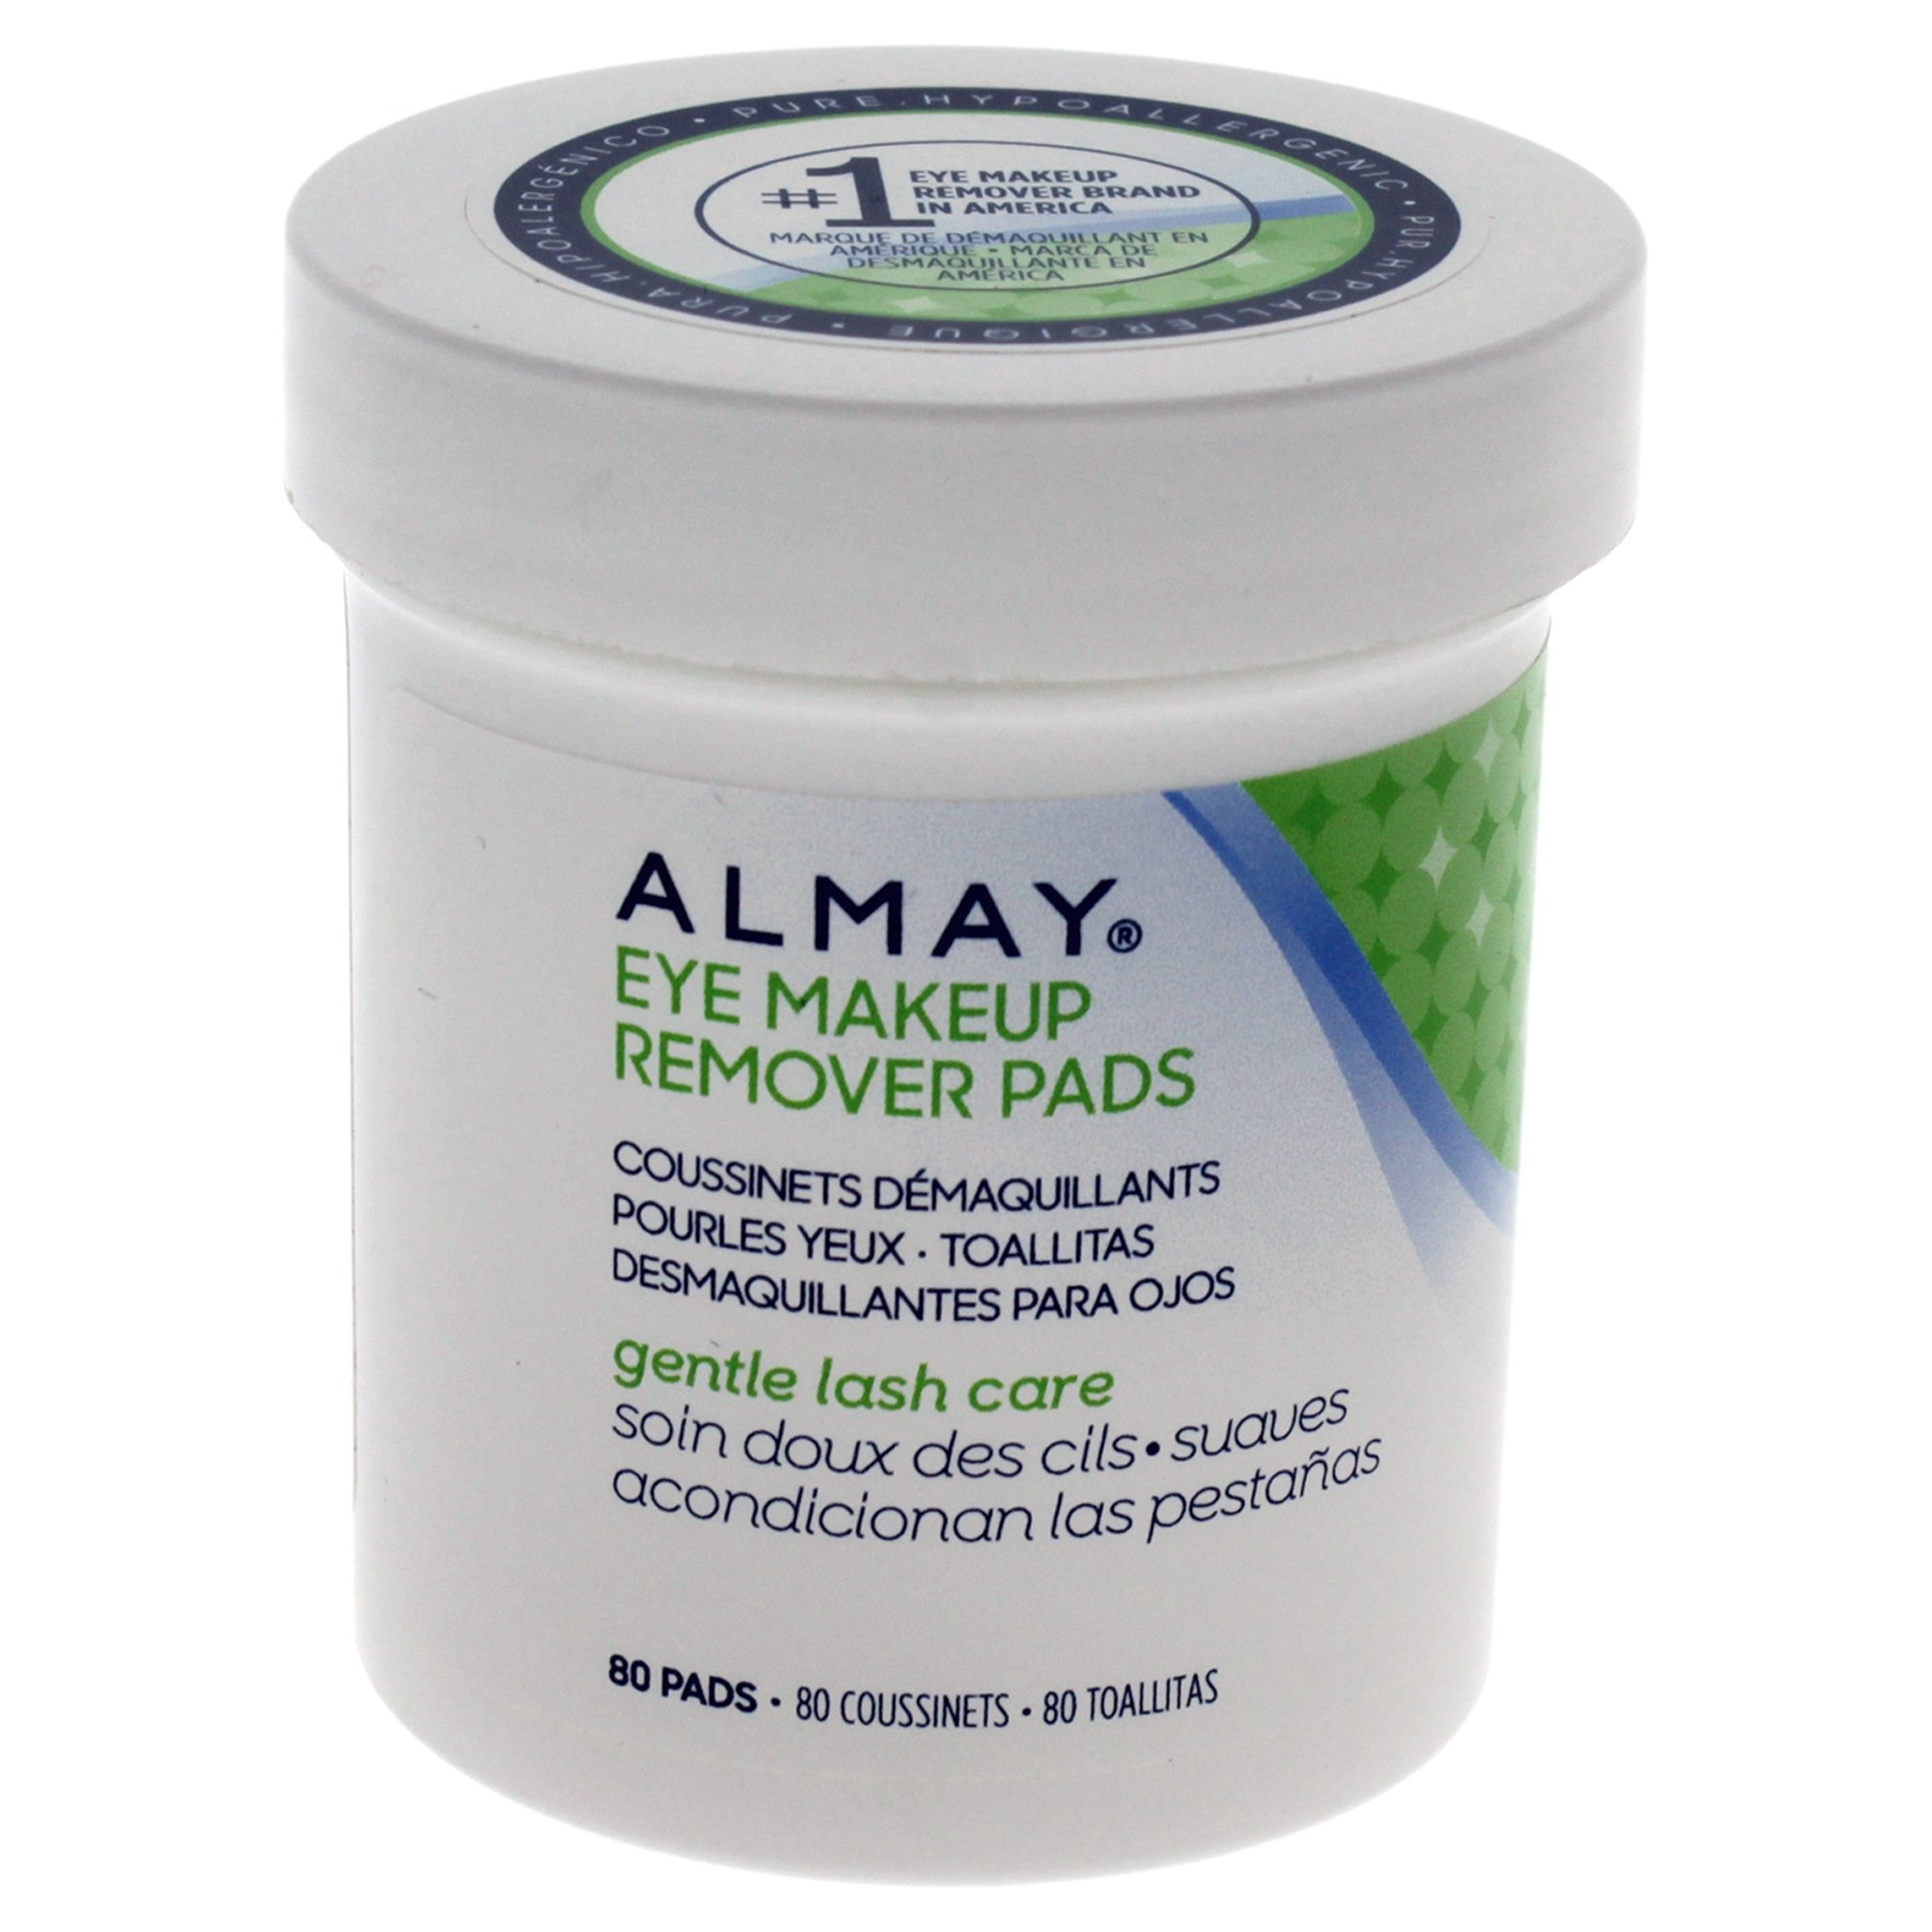 Almay Lash Care Gentle Eye Makeup Remover Pad, 80 count